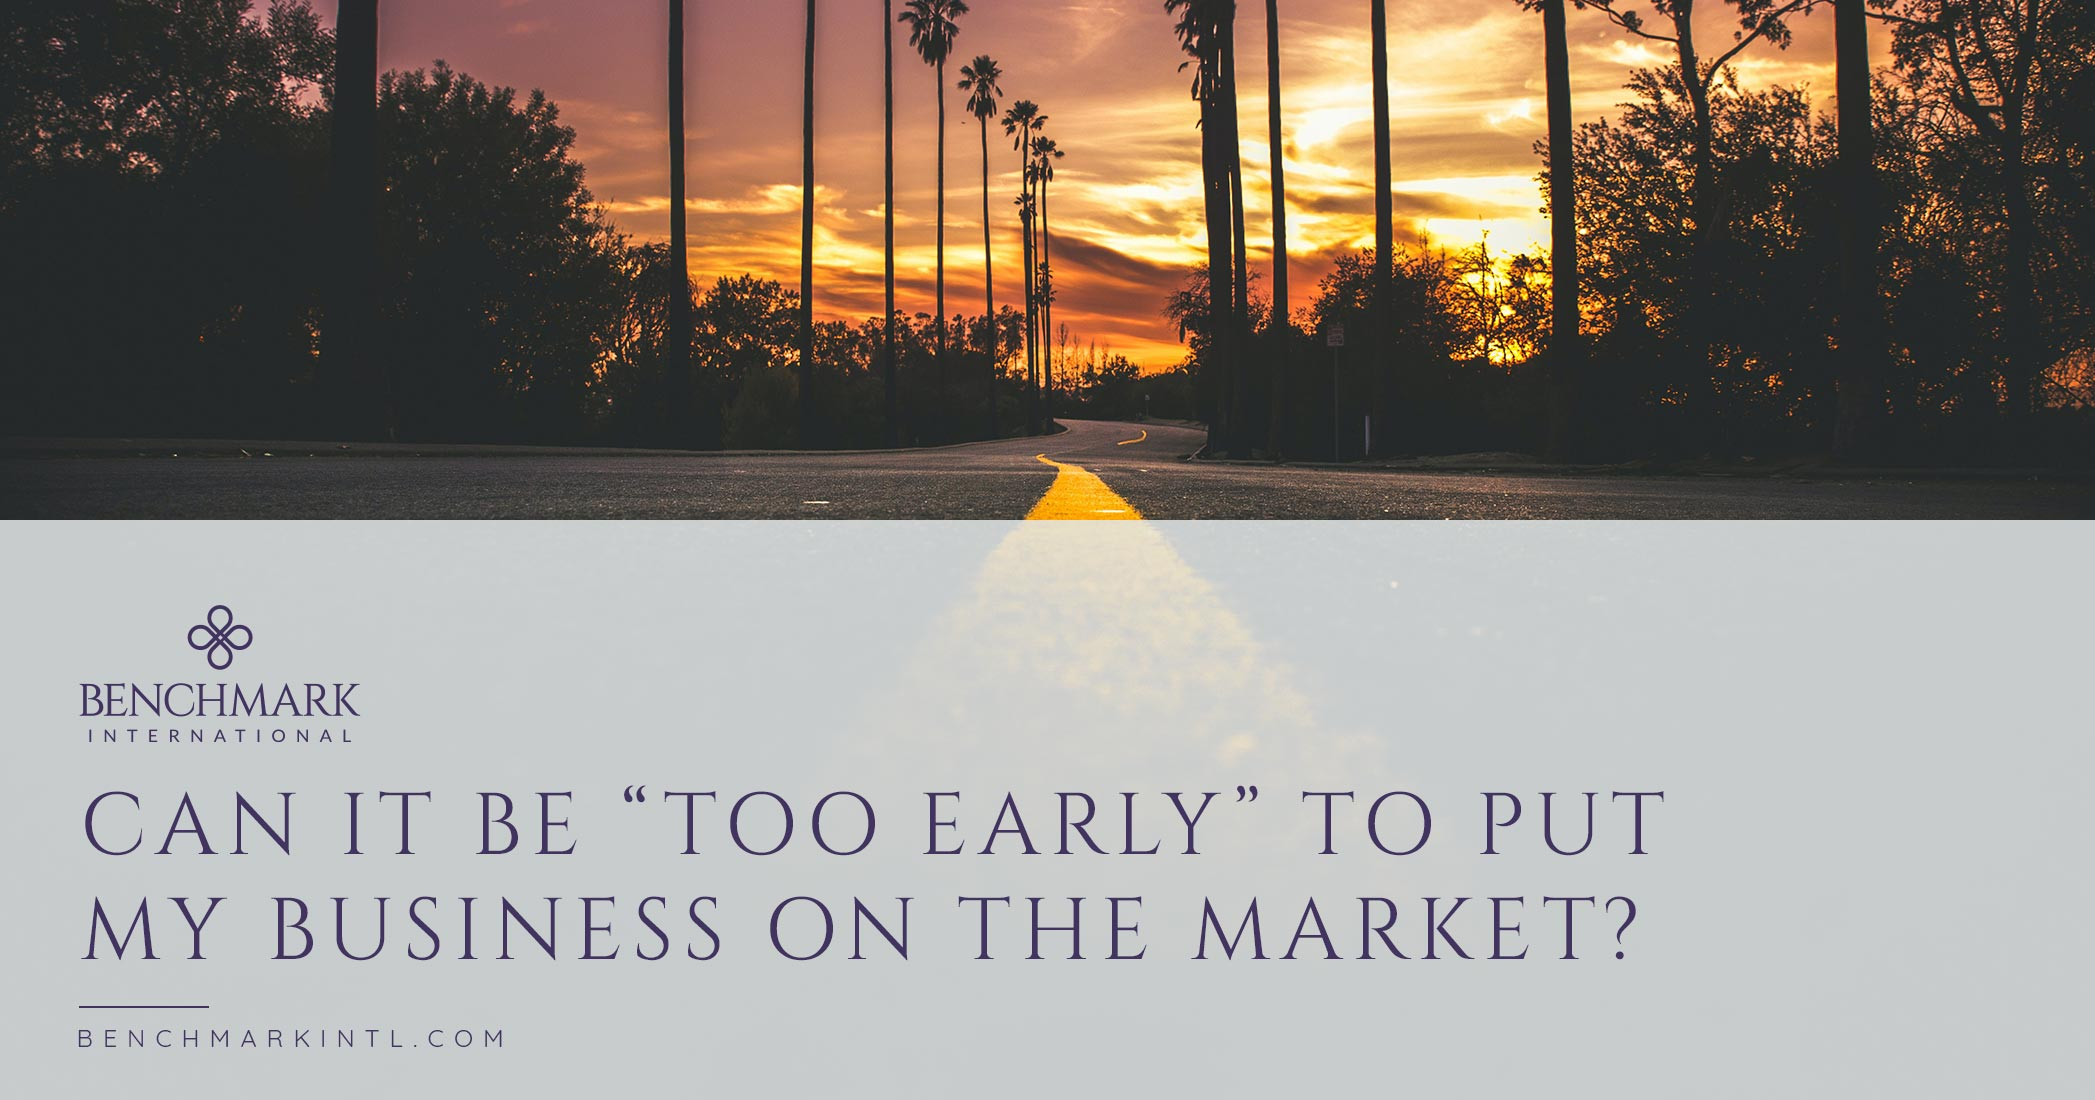 Can It Be Too Early To Put My Business On The Market?